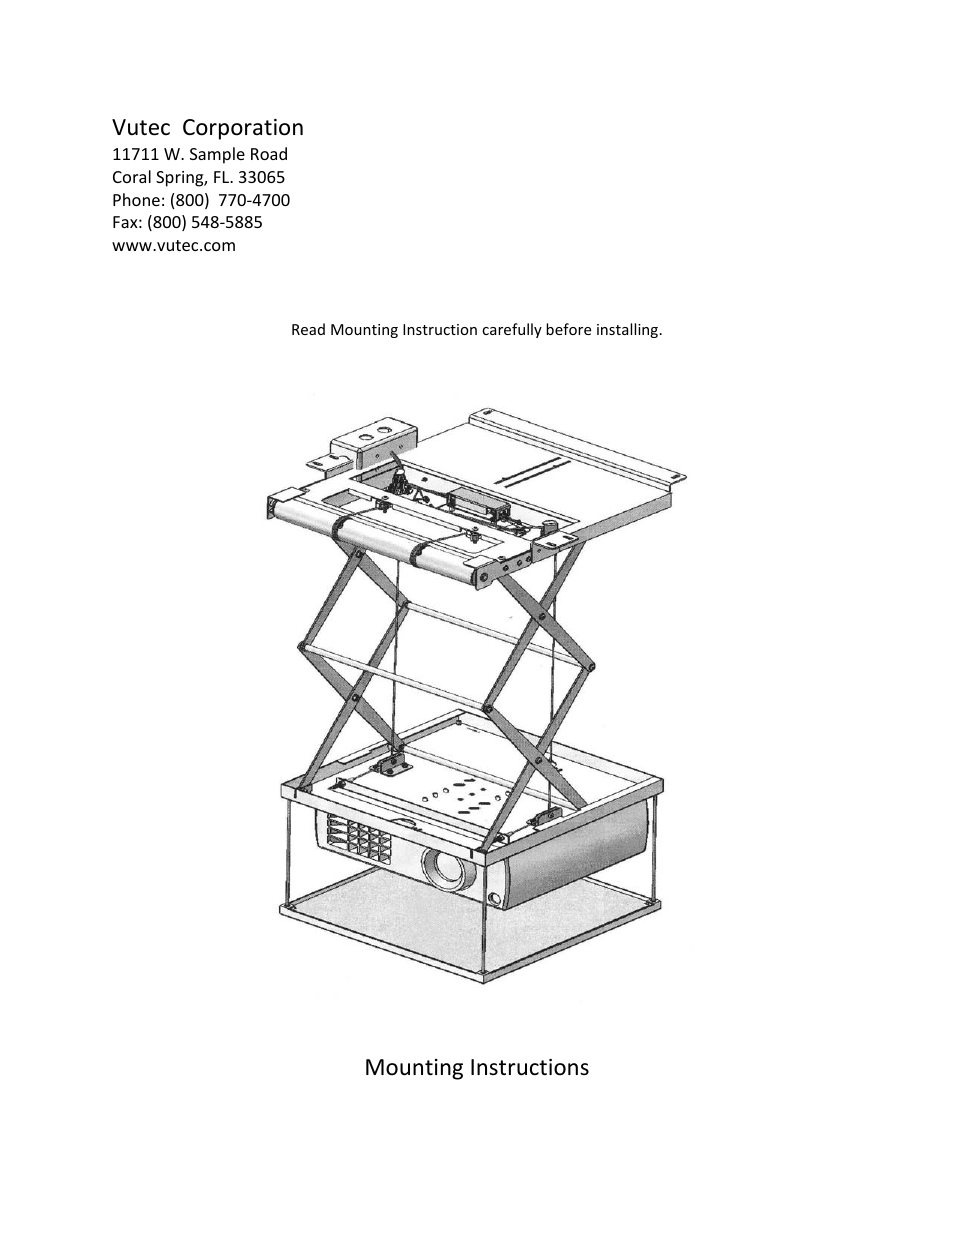 Vutec PROJECTOR SCISSOR LIFT - Installation Instructions User Manual | 16  pages